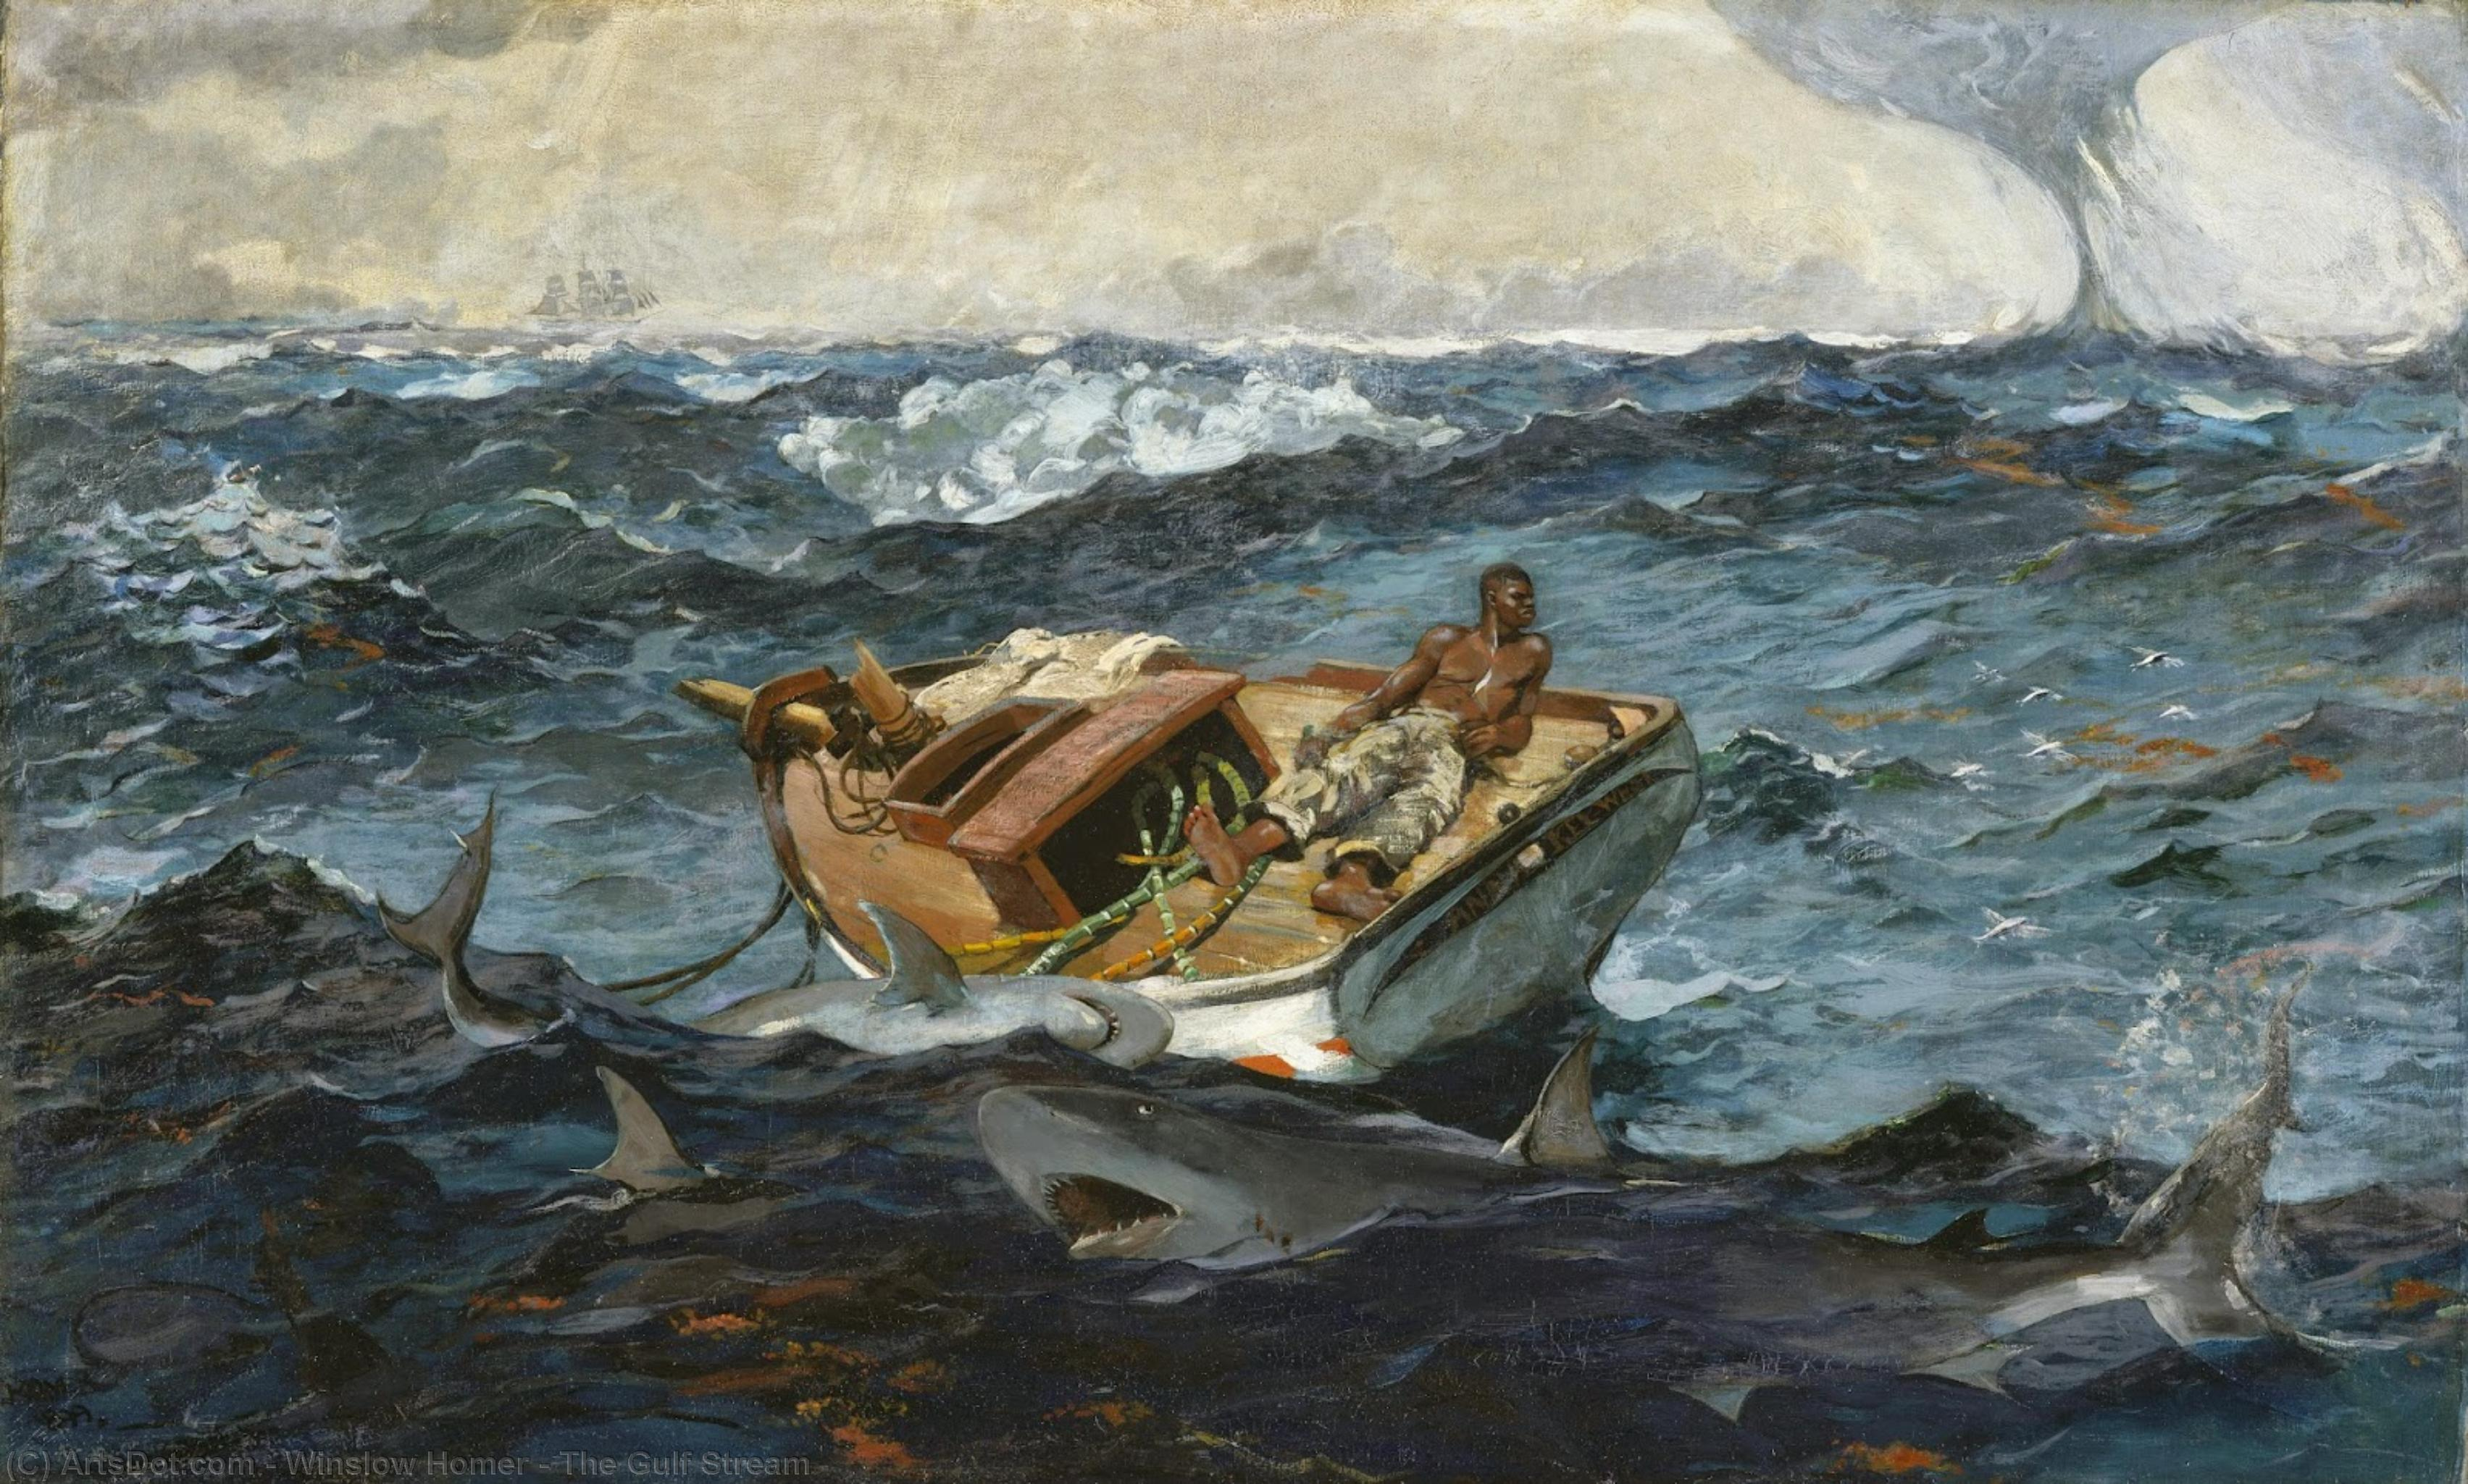 Wikioo.org - The Encyclopedia of Fine Arts - Painting, Artwork by Winslow Homer - The Gulf Stream